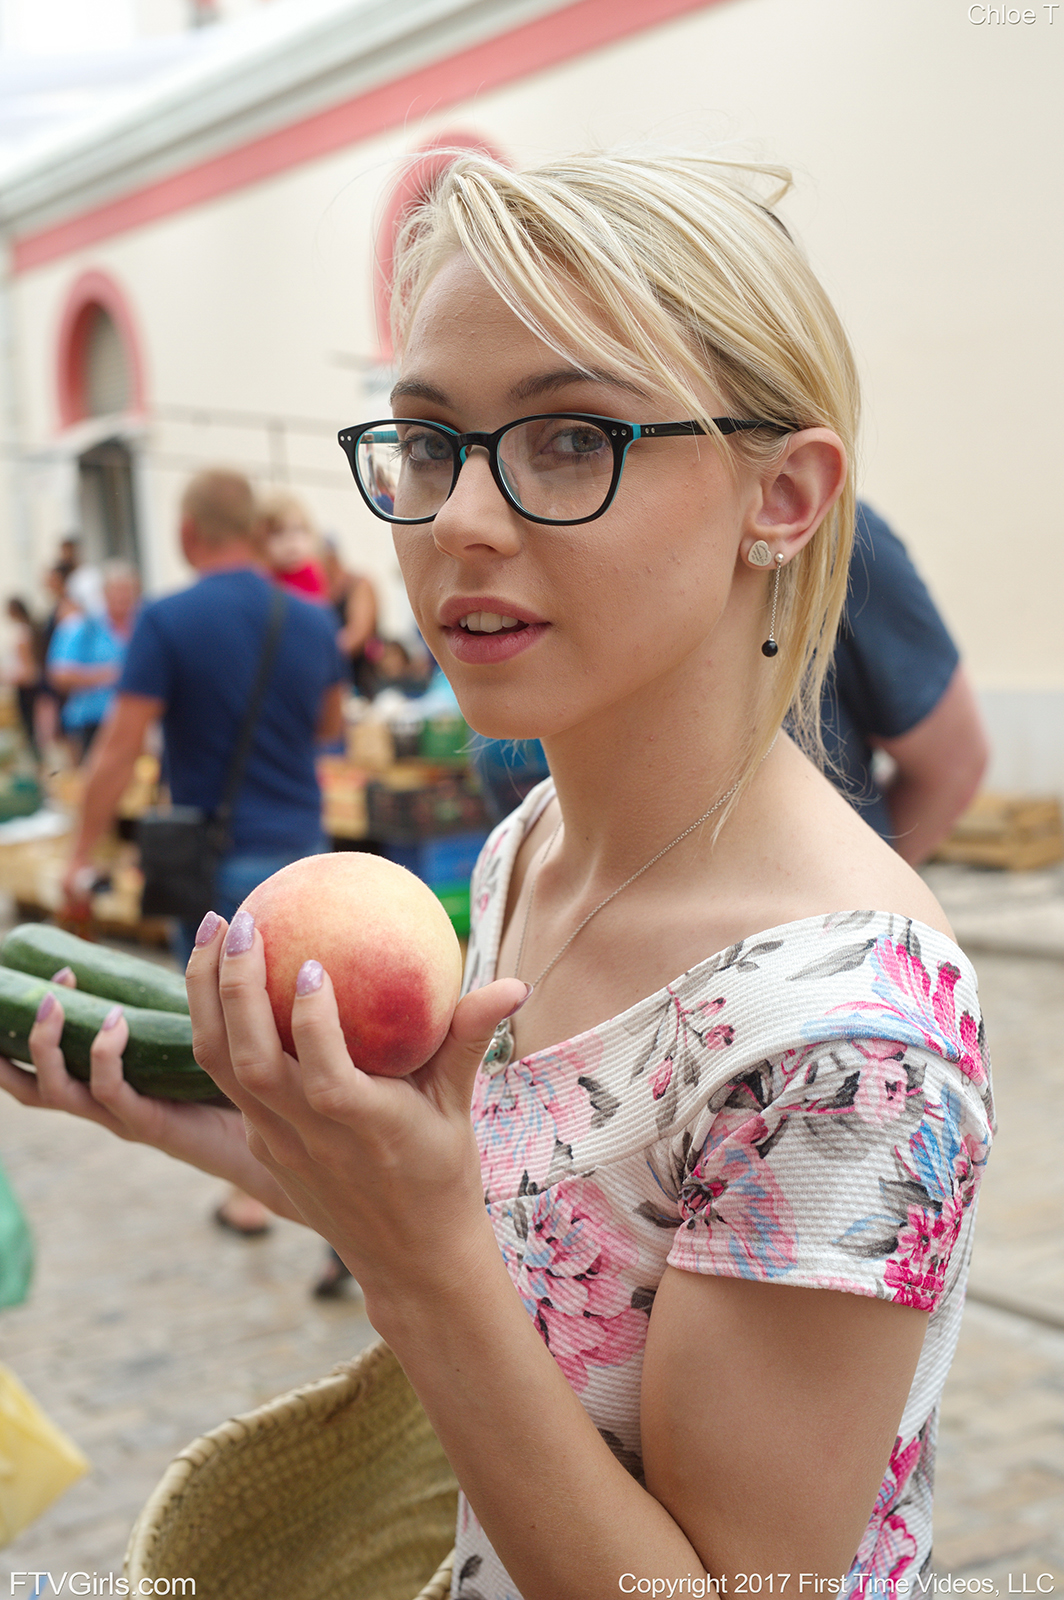 geekful hotness offers me a peach for exchange with a zucchini #2